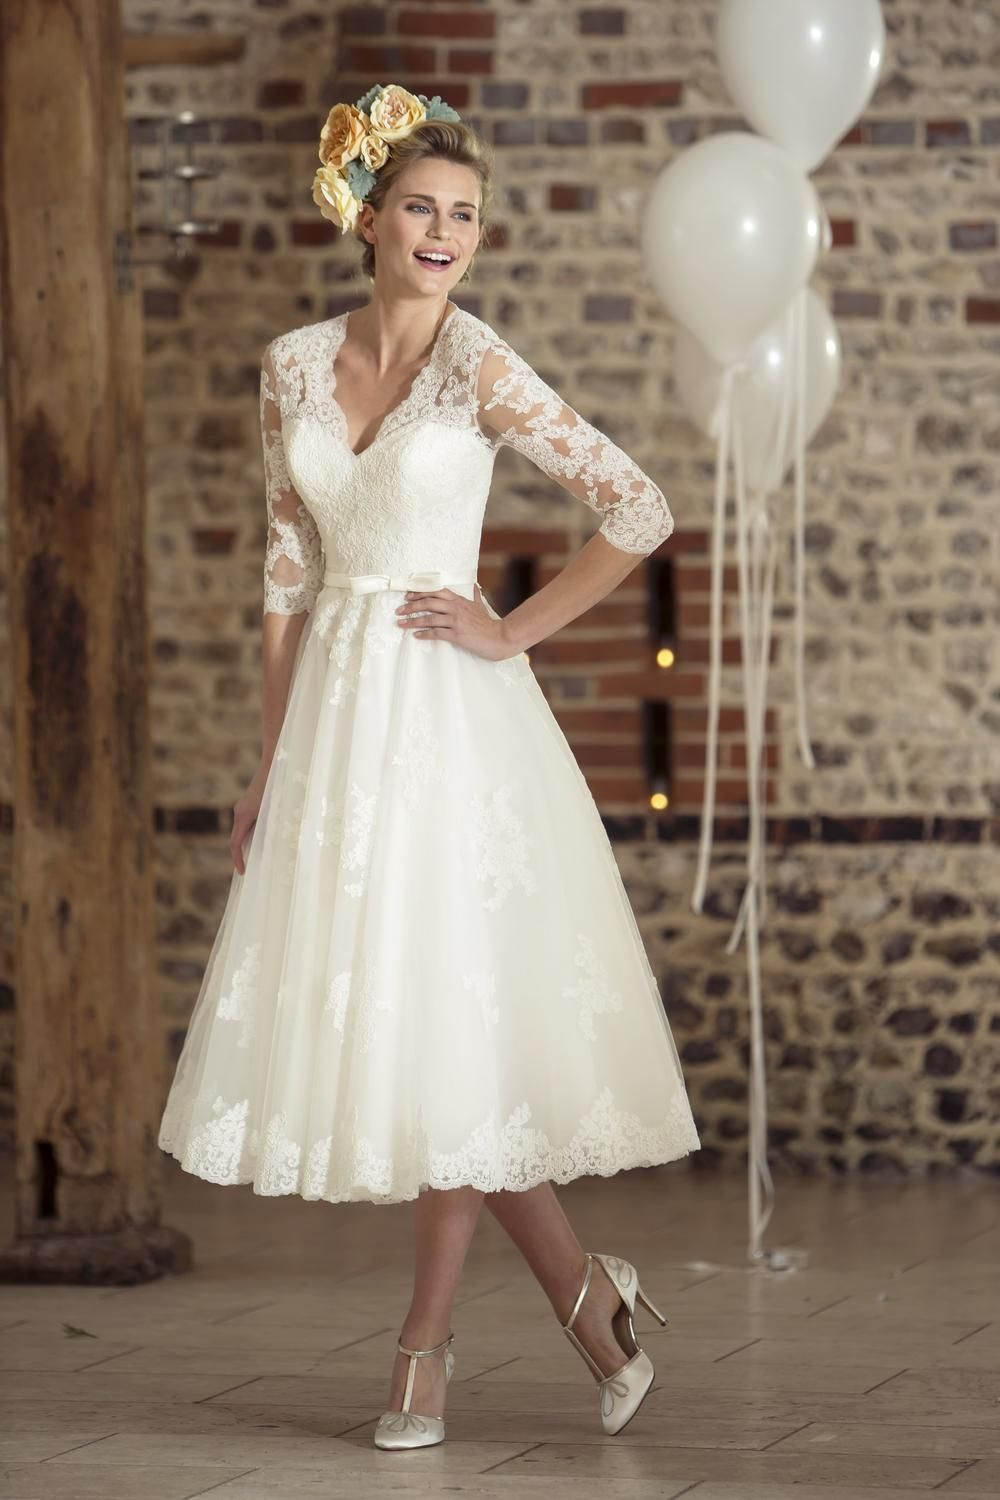 short retro wedding dresses uk%0A Contemporary Wedding Dresses and Vintage Inspired Bridal Gowns   W       True Bride